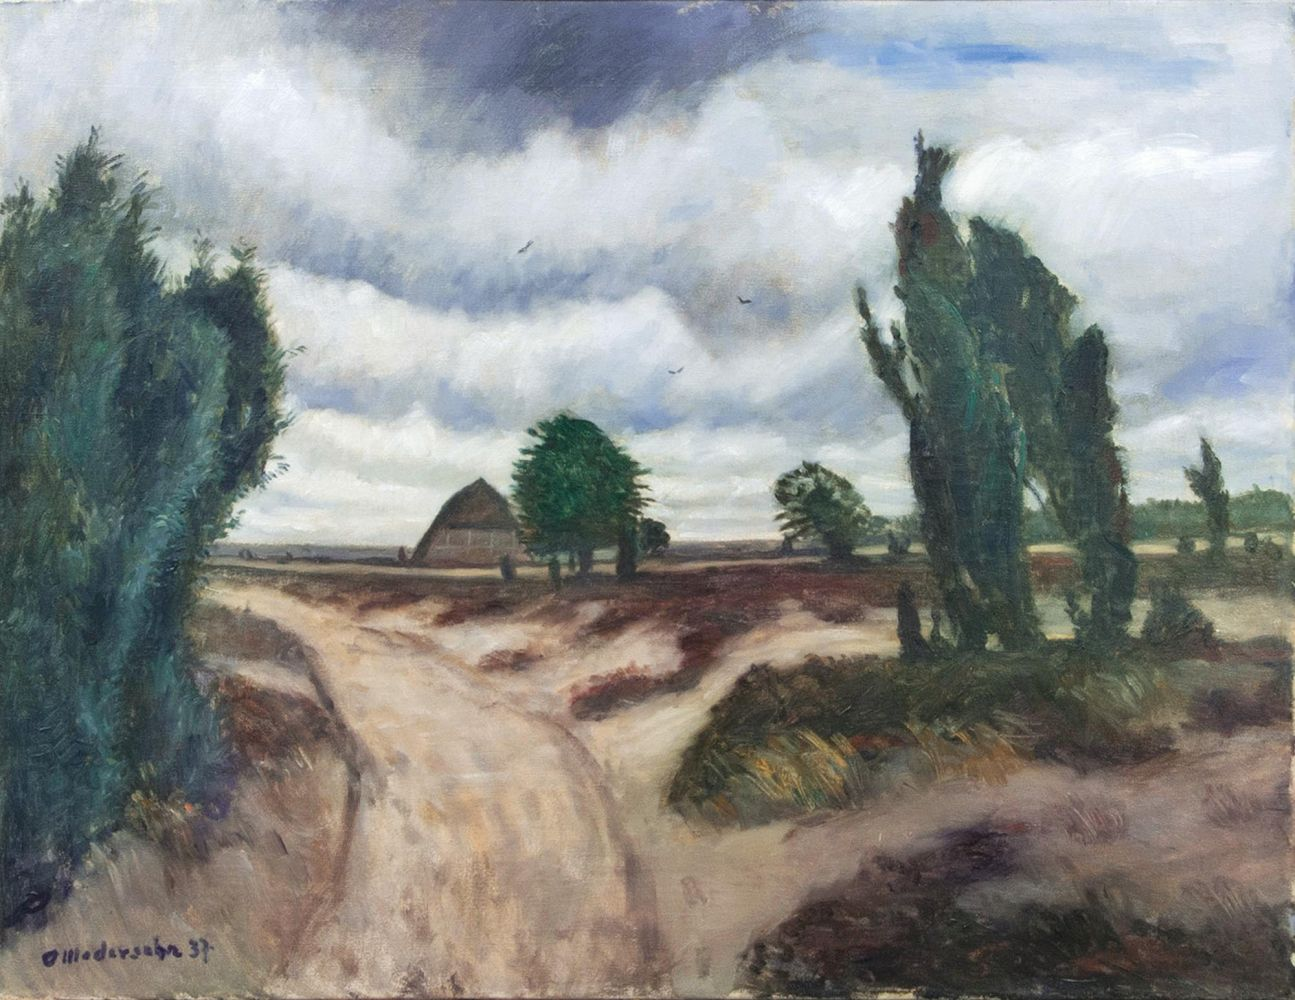 Sheep's Stable in the Heath